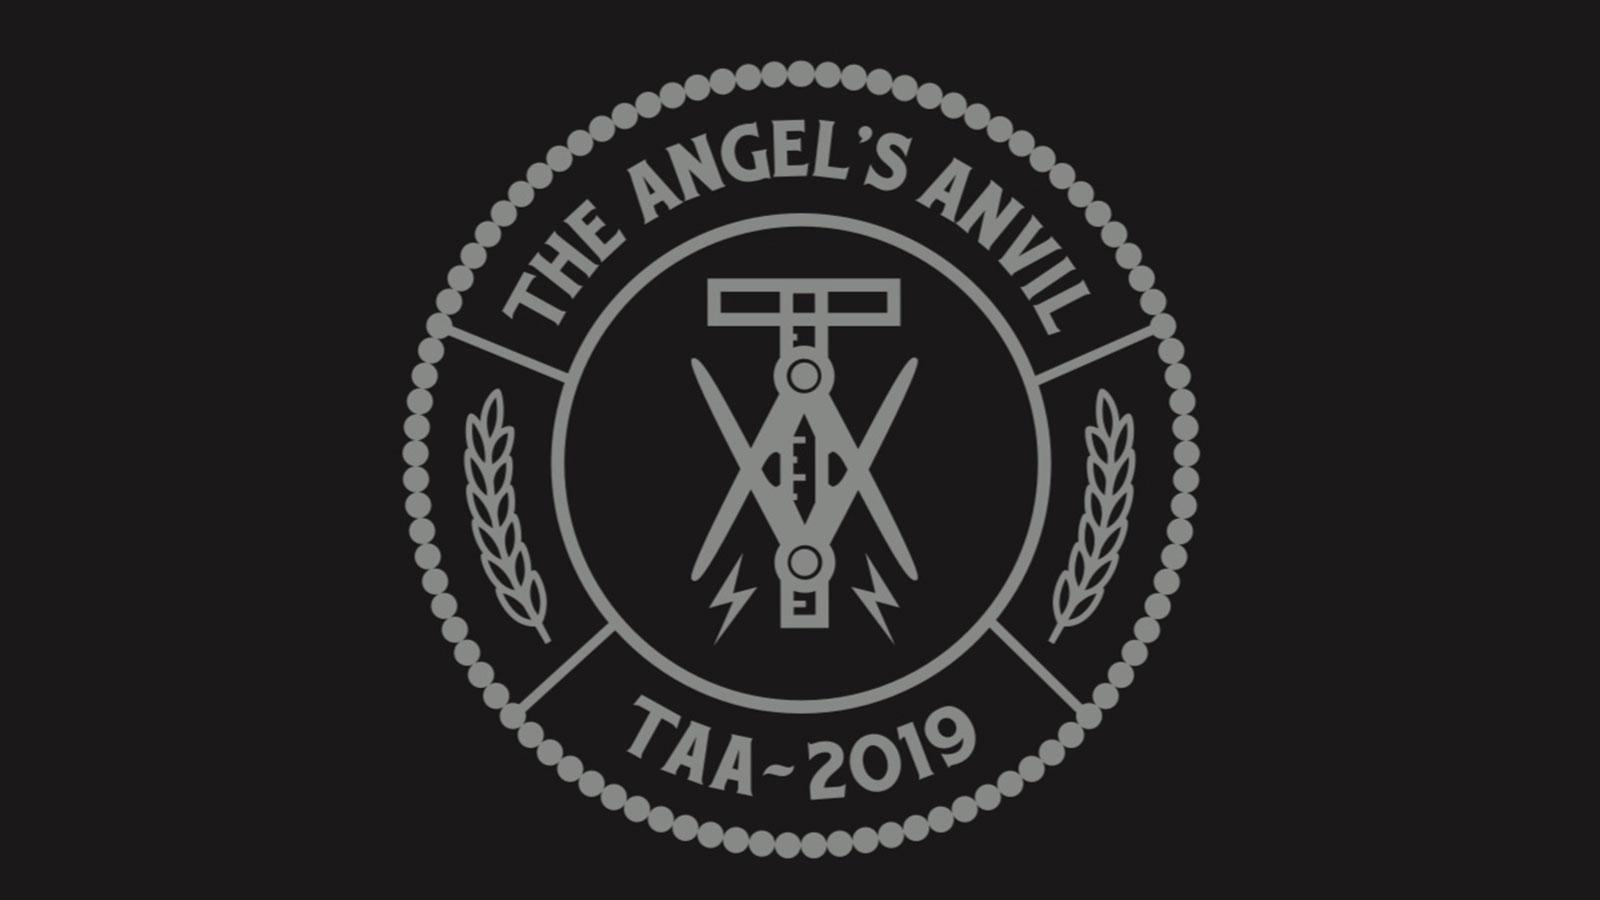 Crowned Heads to Introduce The Angel's Anvil 2019 at TAA